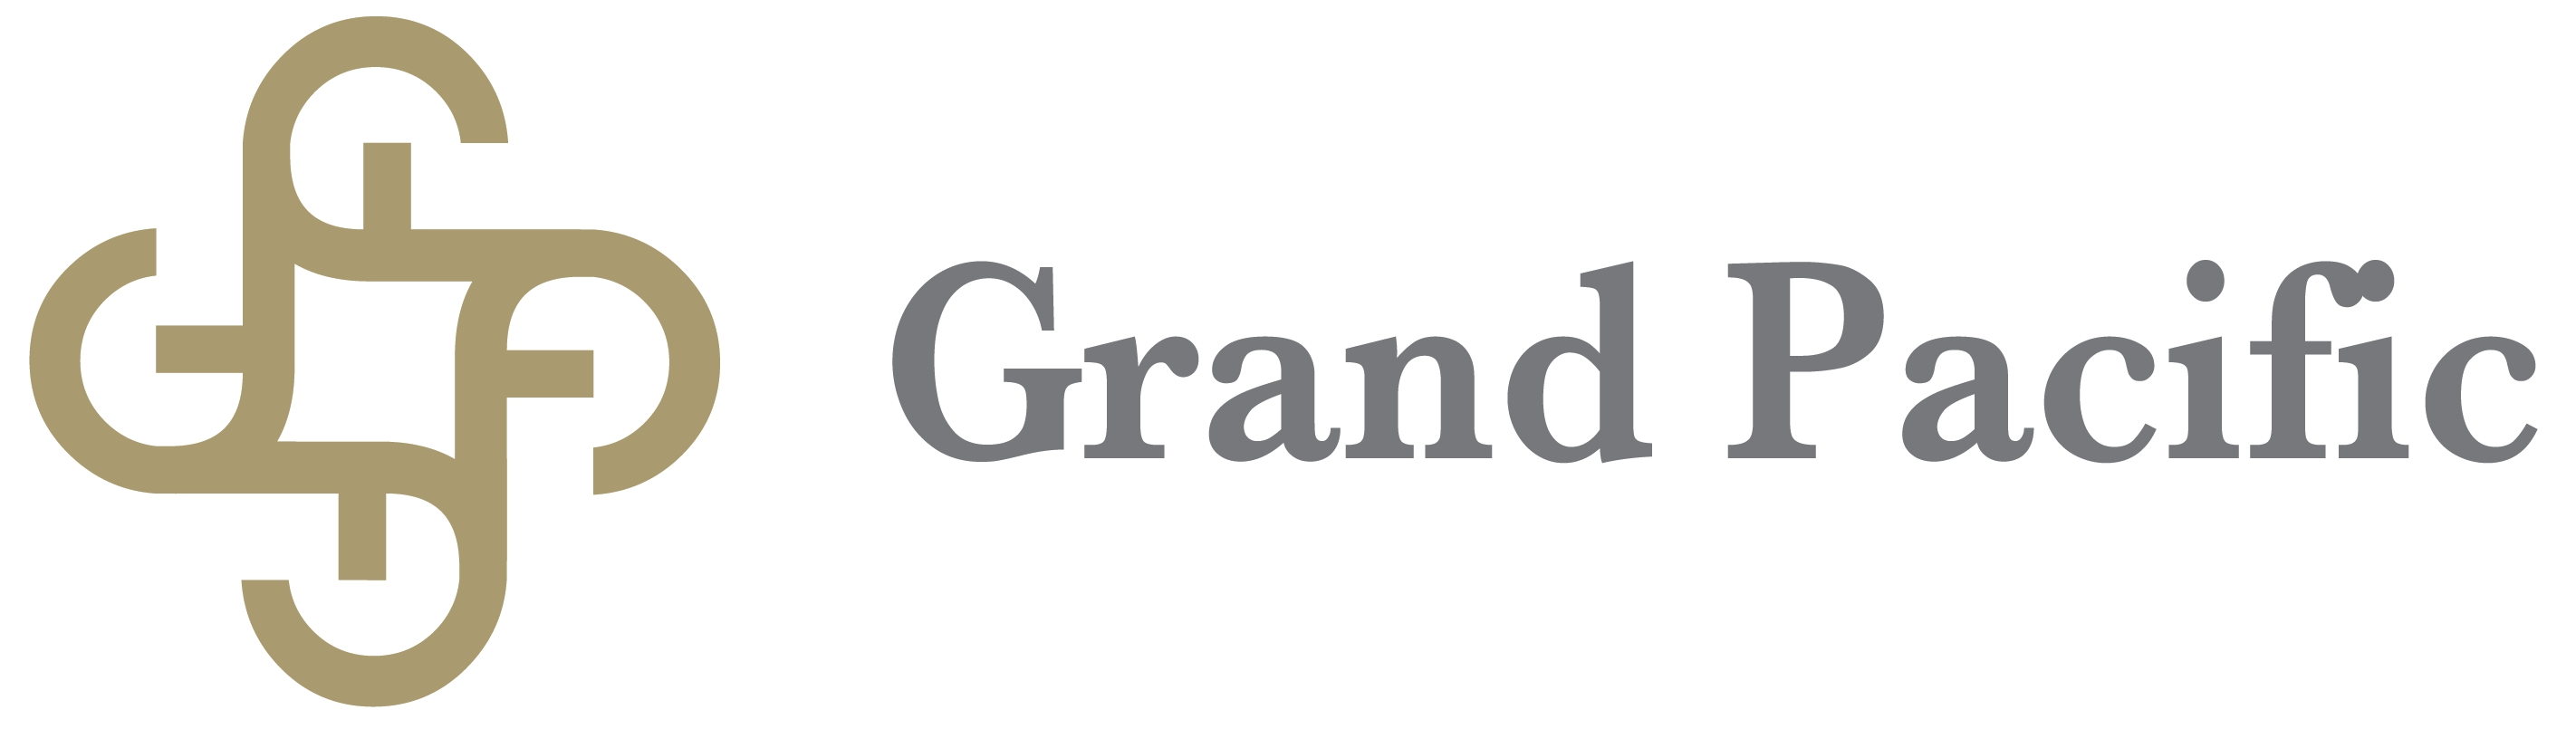 Grand Pacific Financing Corp